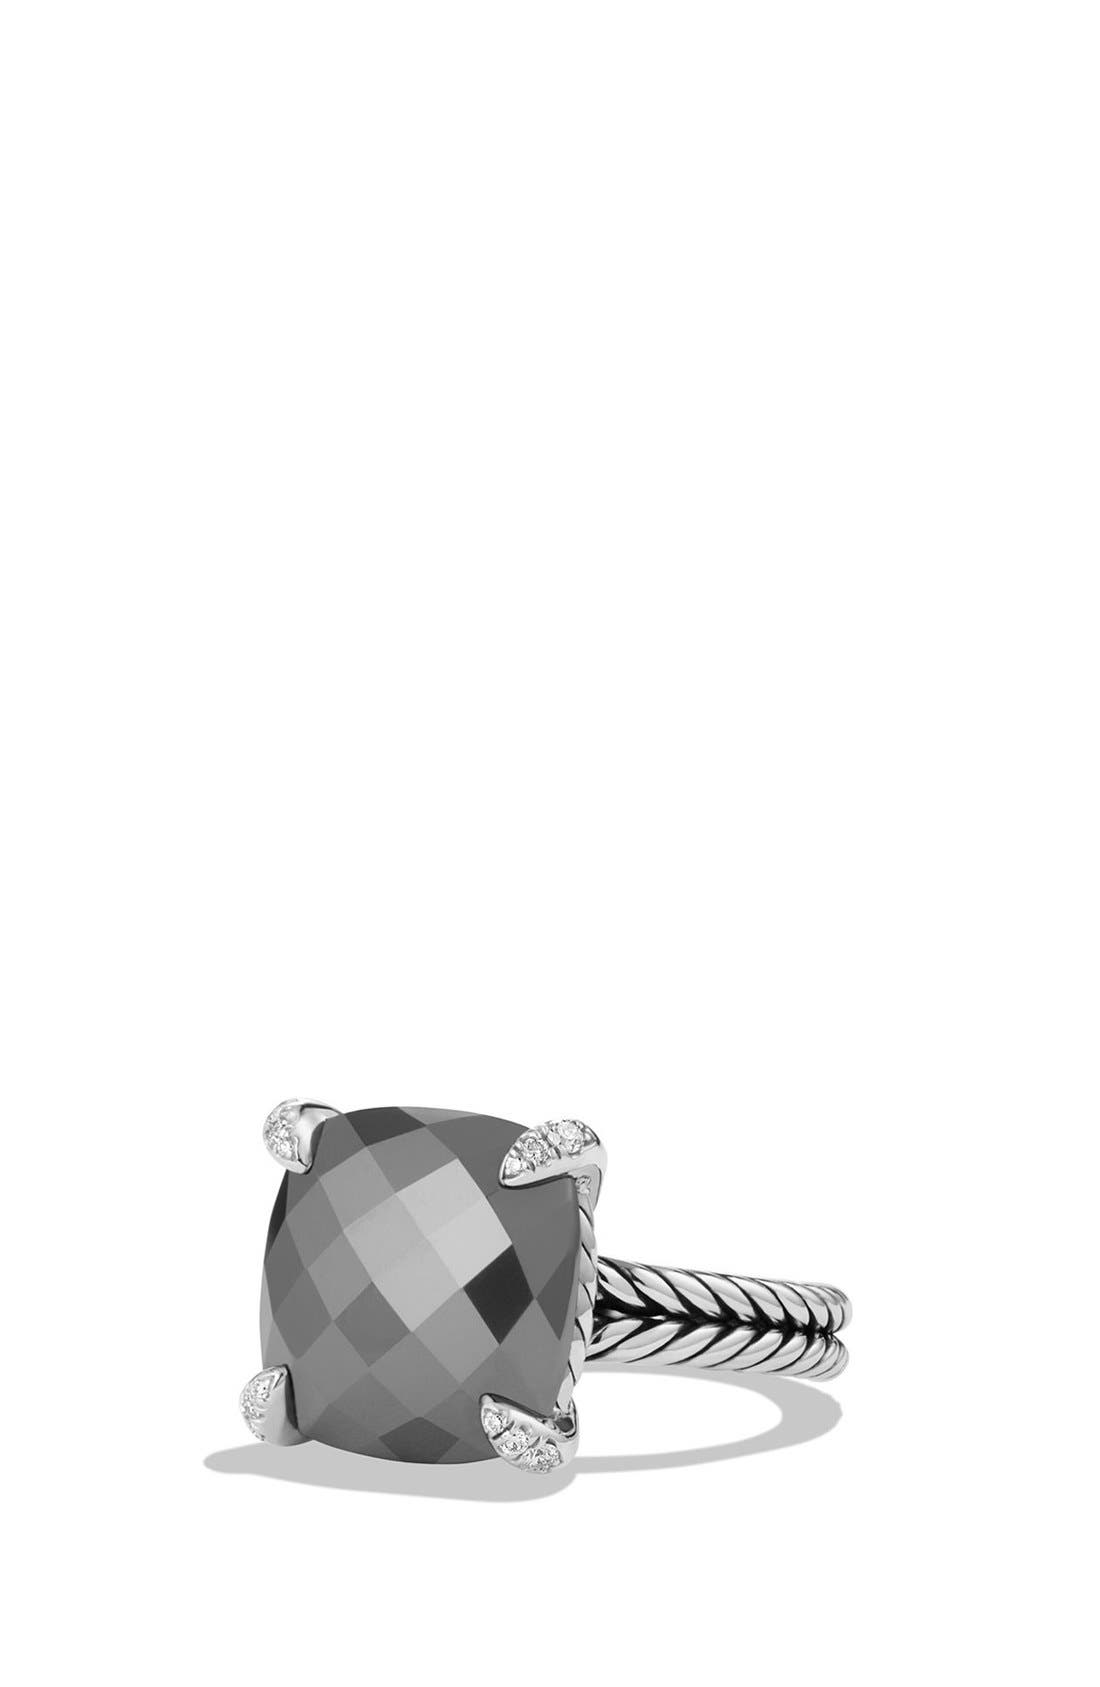 David Yurman 'Châtelaine' Ring with Semiprecious Stone and Diamonds